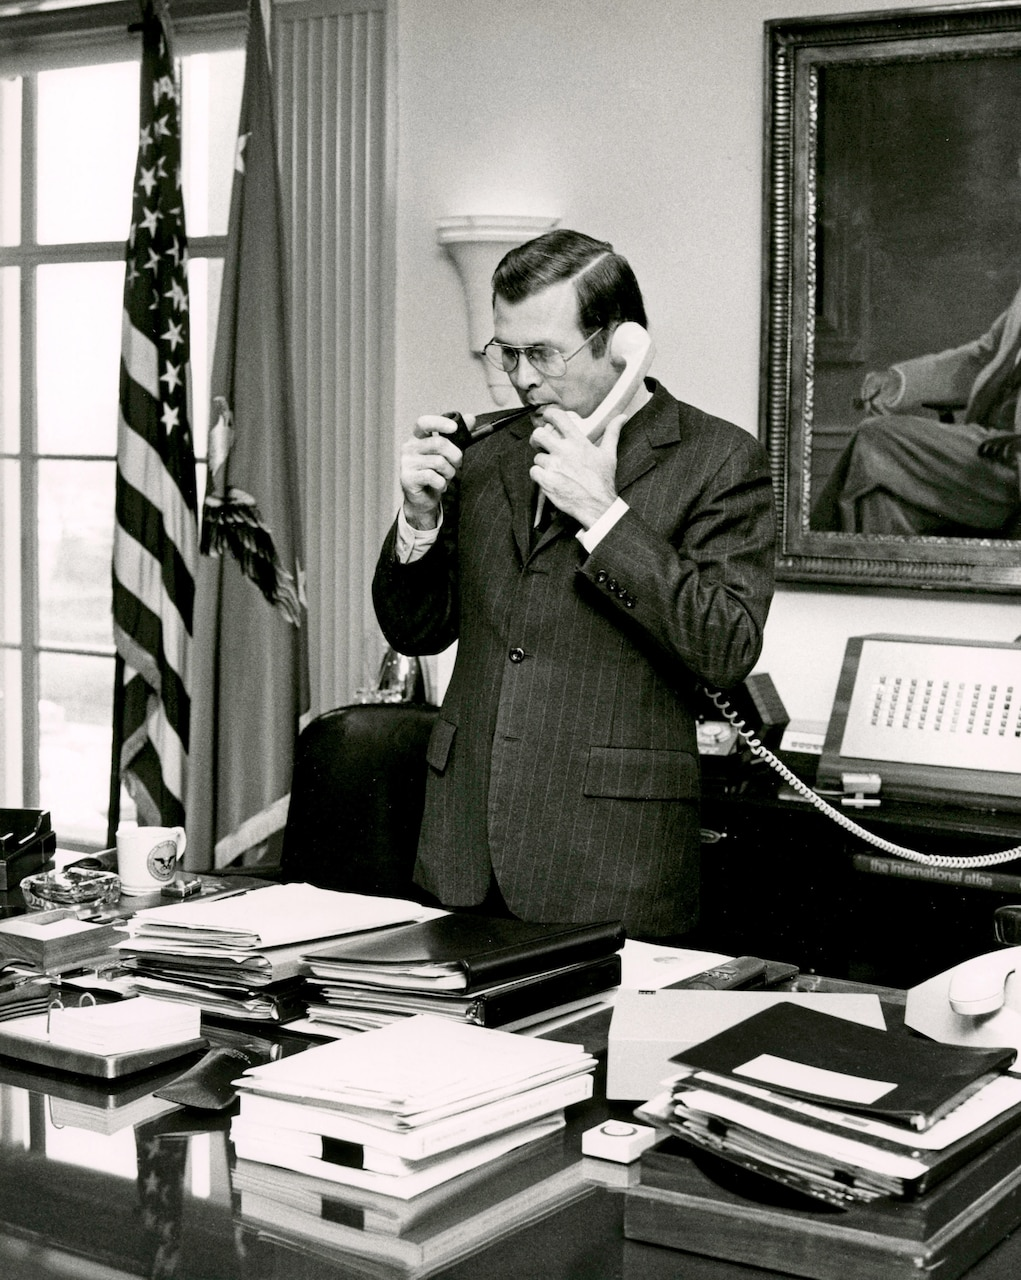 Defense Secretary Donald H. Rumsfeld stands and smokes a pipe while holding a phone.